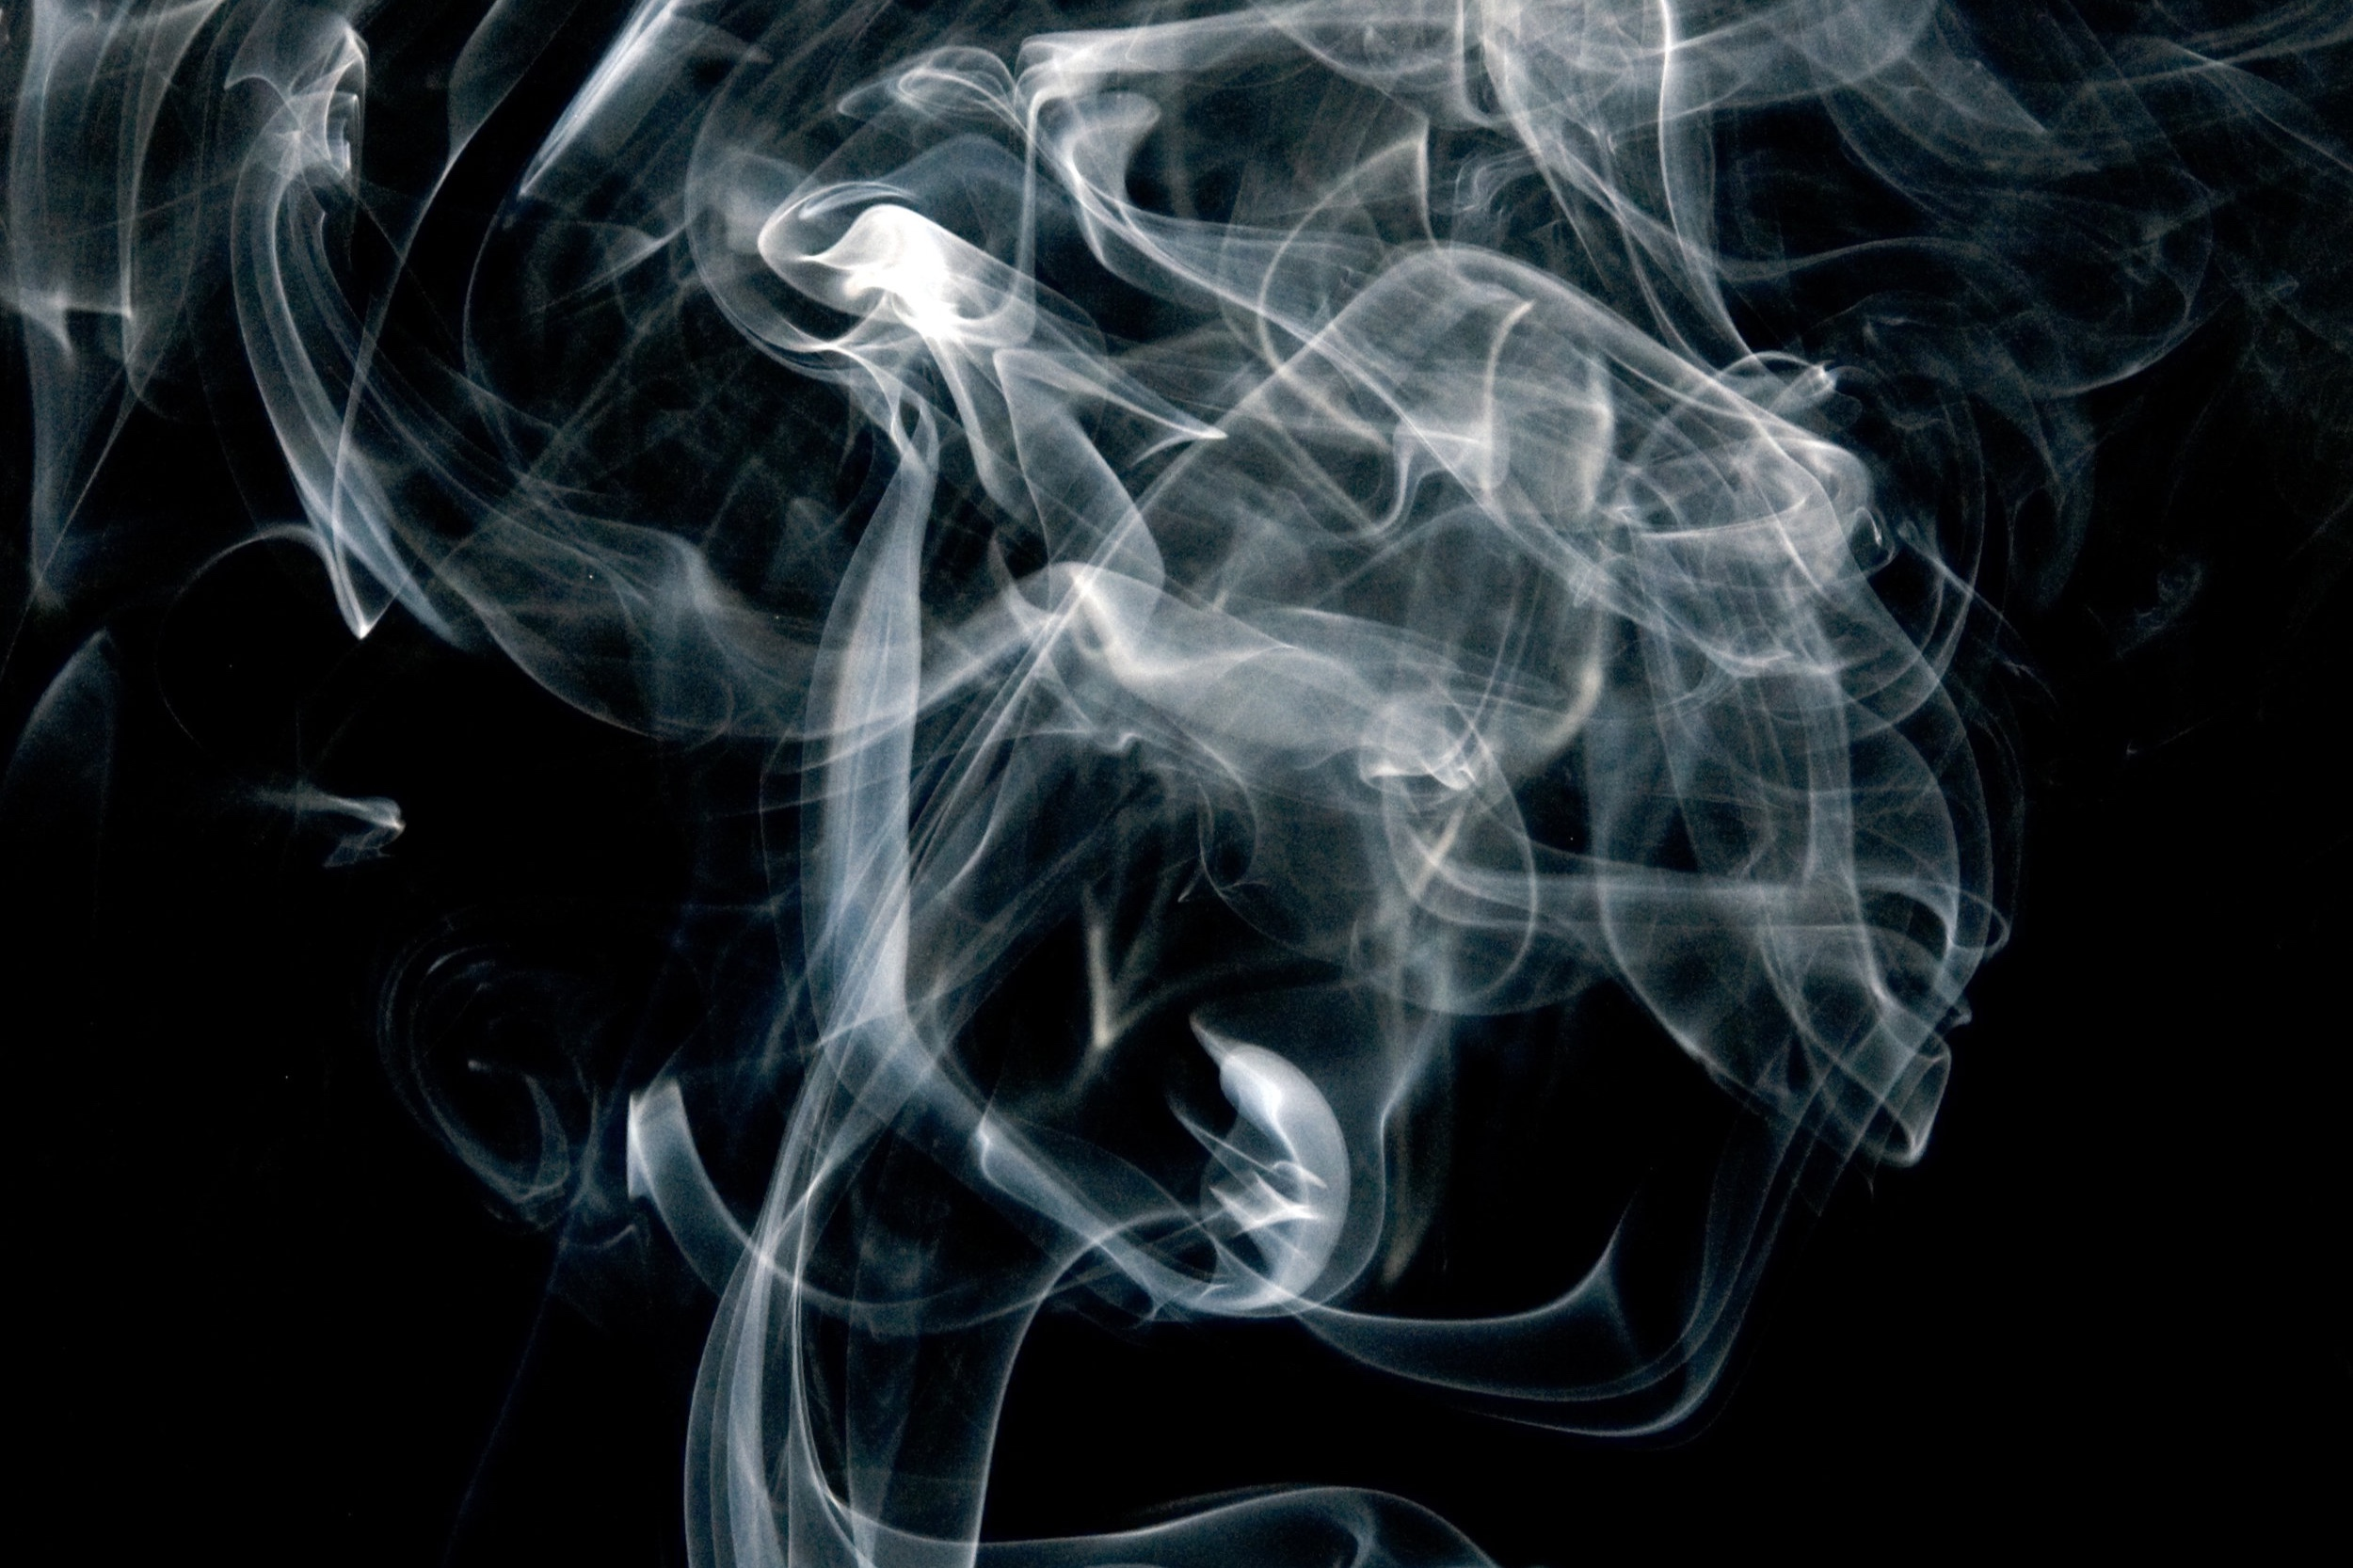 Canva+-+Smoke%2C+Fumes%2C+Black%2C+White%2C+Curve%2C+Cigarette+Smoke.jpg